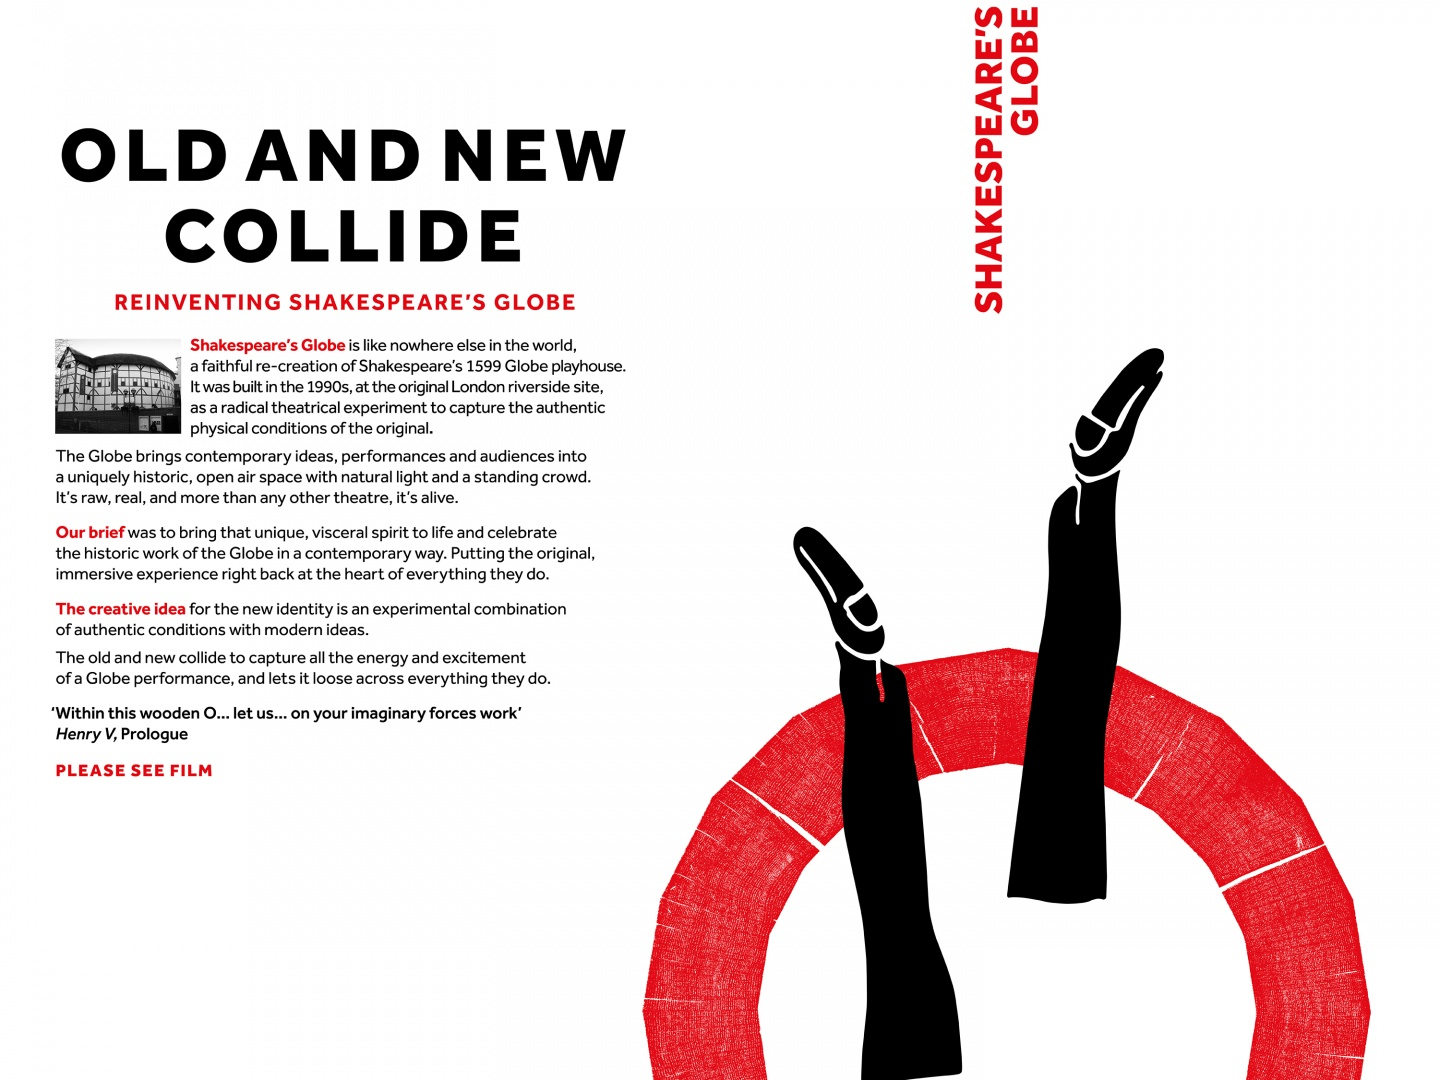 The Old and new Collide: Reinventing the Shakespeare's Globe Thumbnail